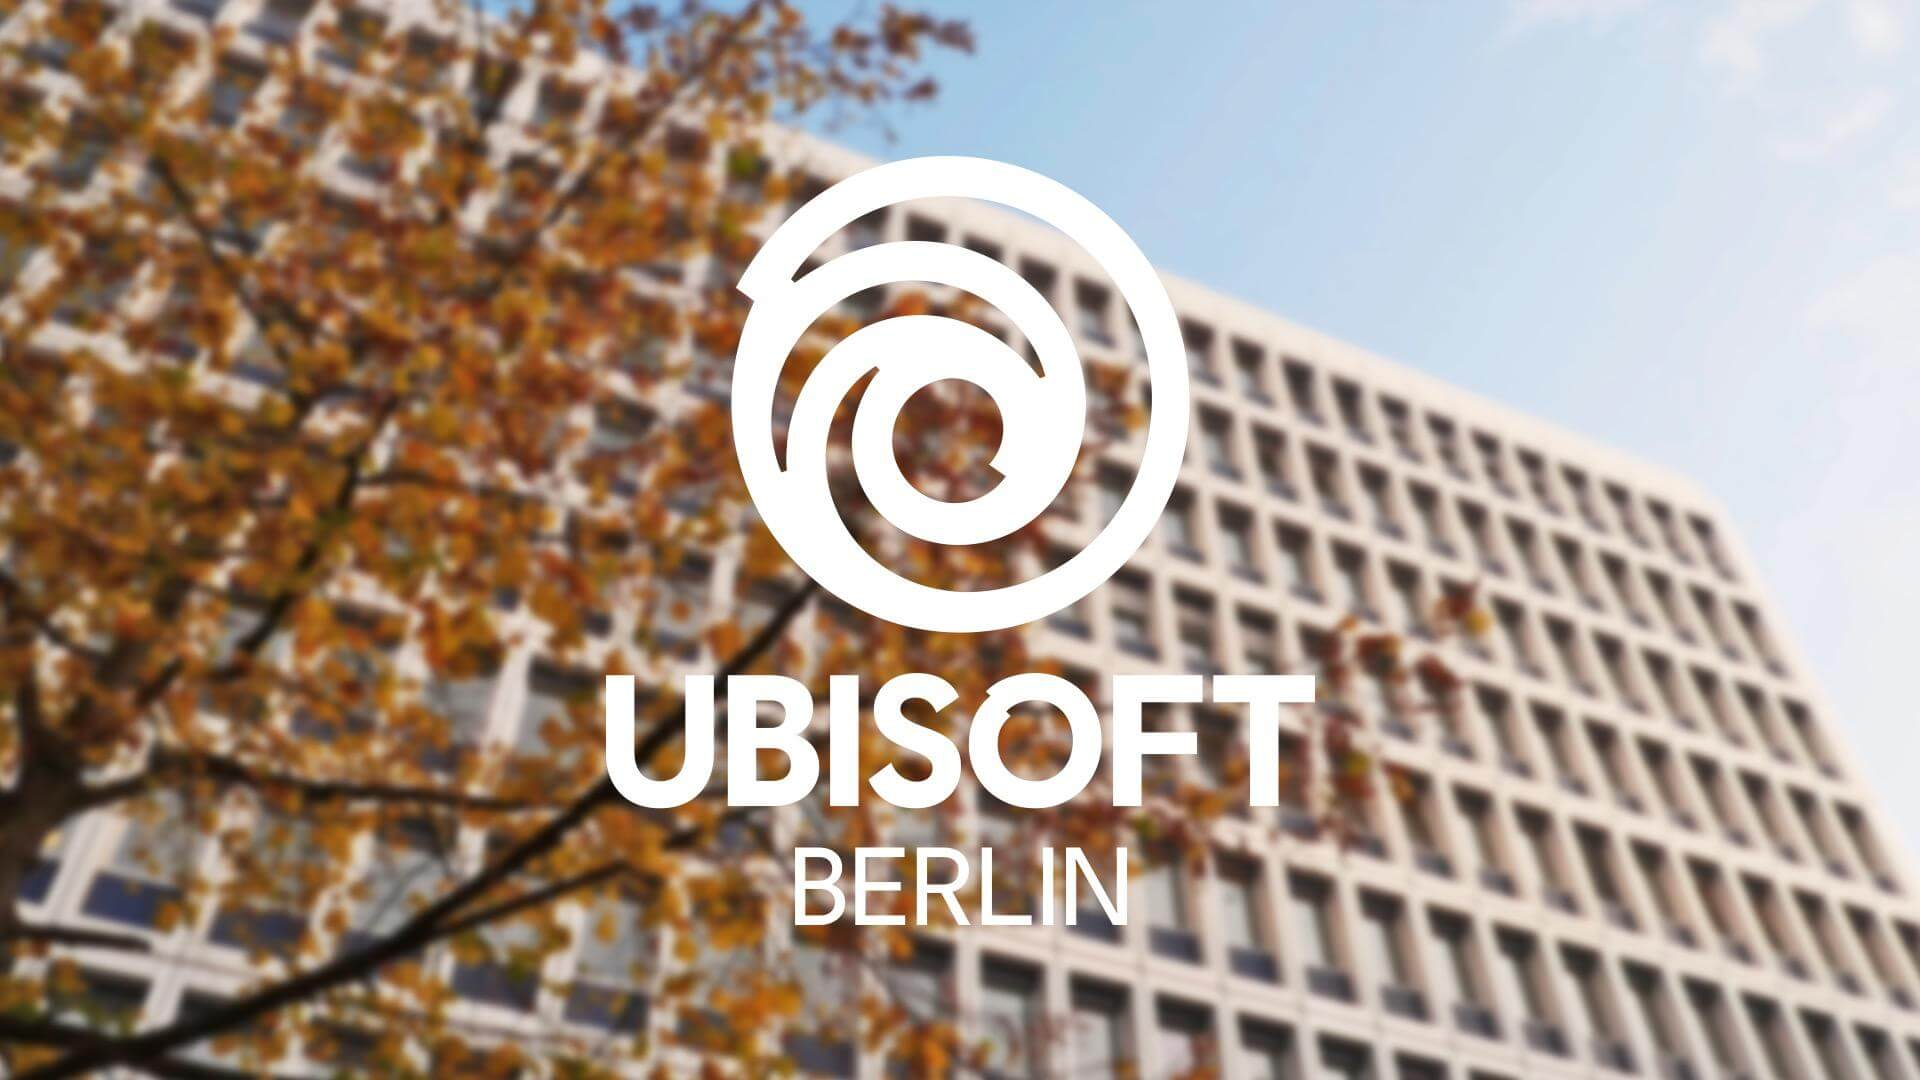 Ubisoft to Open a Brand New Berlin Based Studio in Early 2018